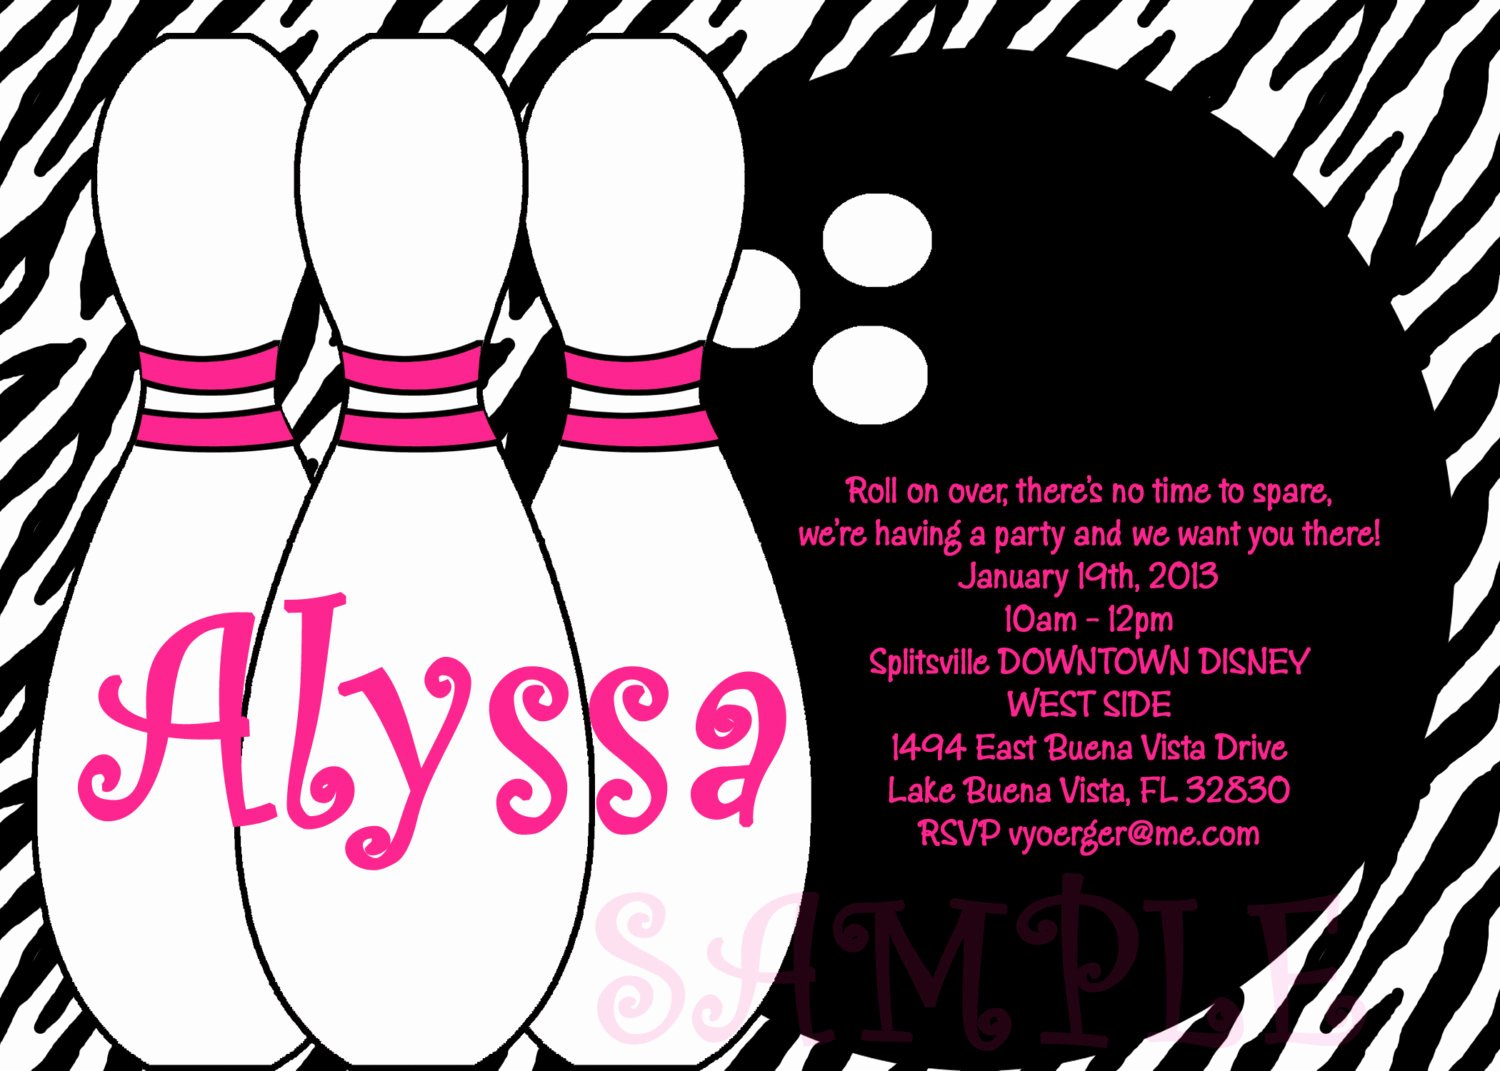 Free Bowling Invitation Template Best Of Bowling Party Invitations Templates Ideas Bowling Party